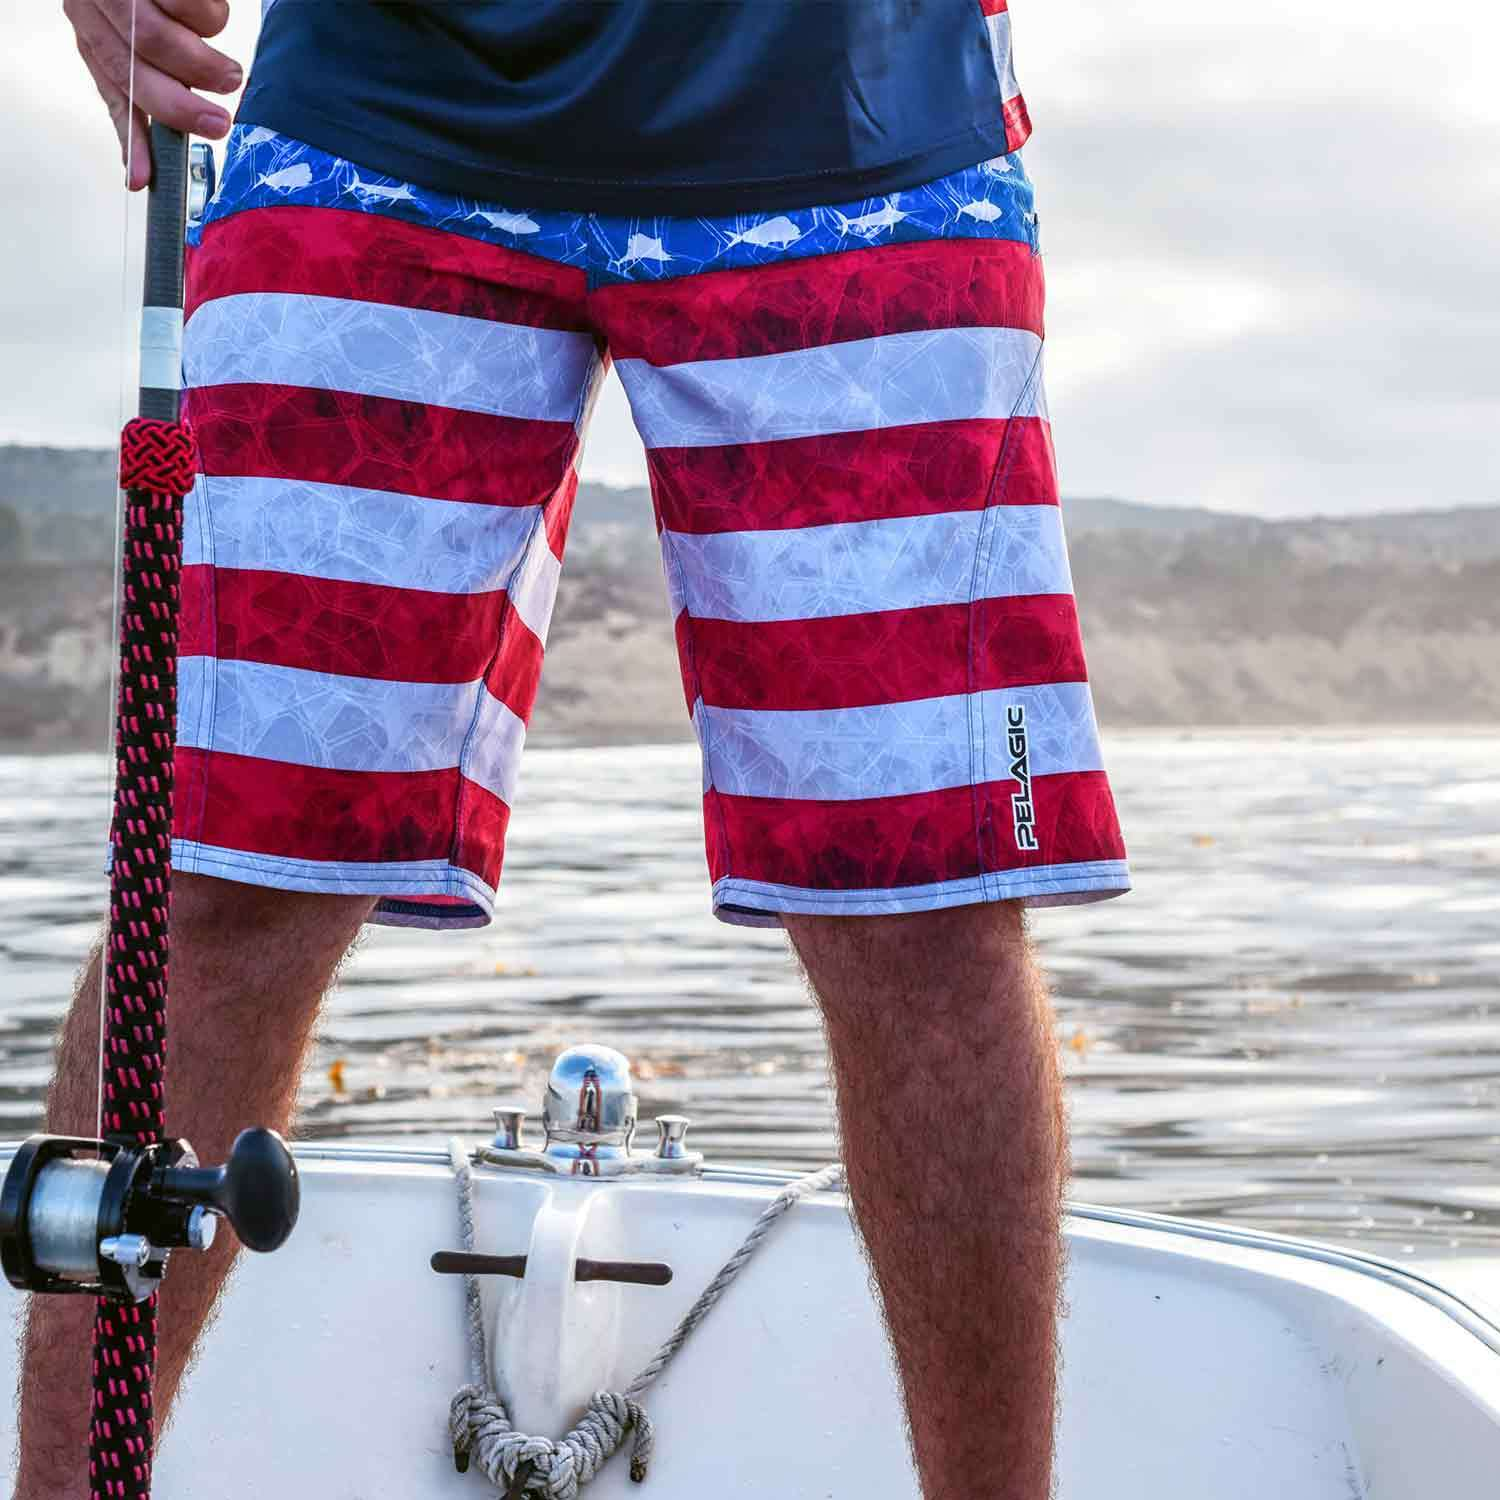 56d0f248bc Men's SHARKSKIN™ Americamo Board Shorts Enlarged view of picture, opens  dialog